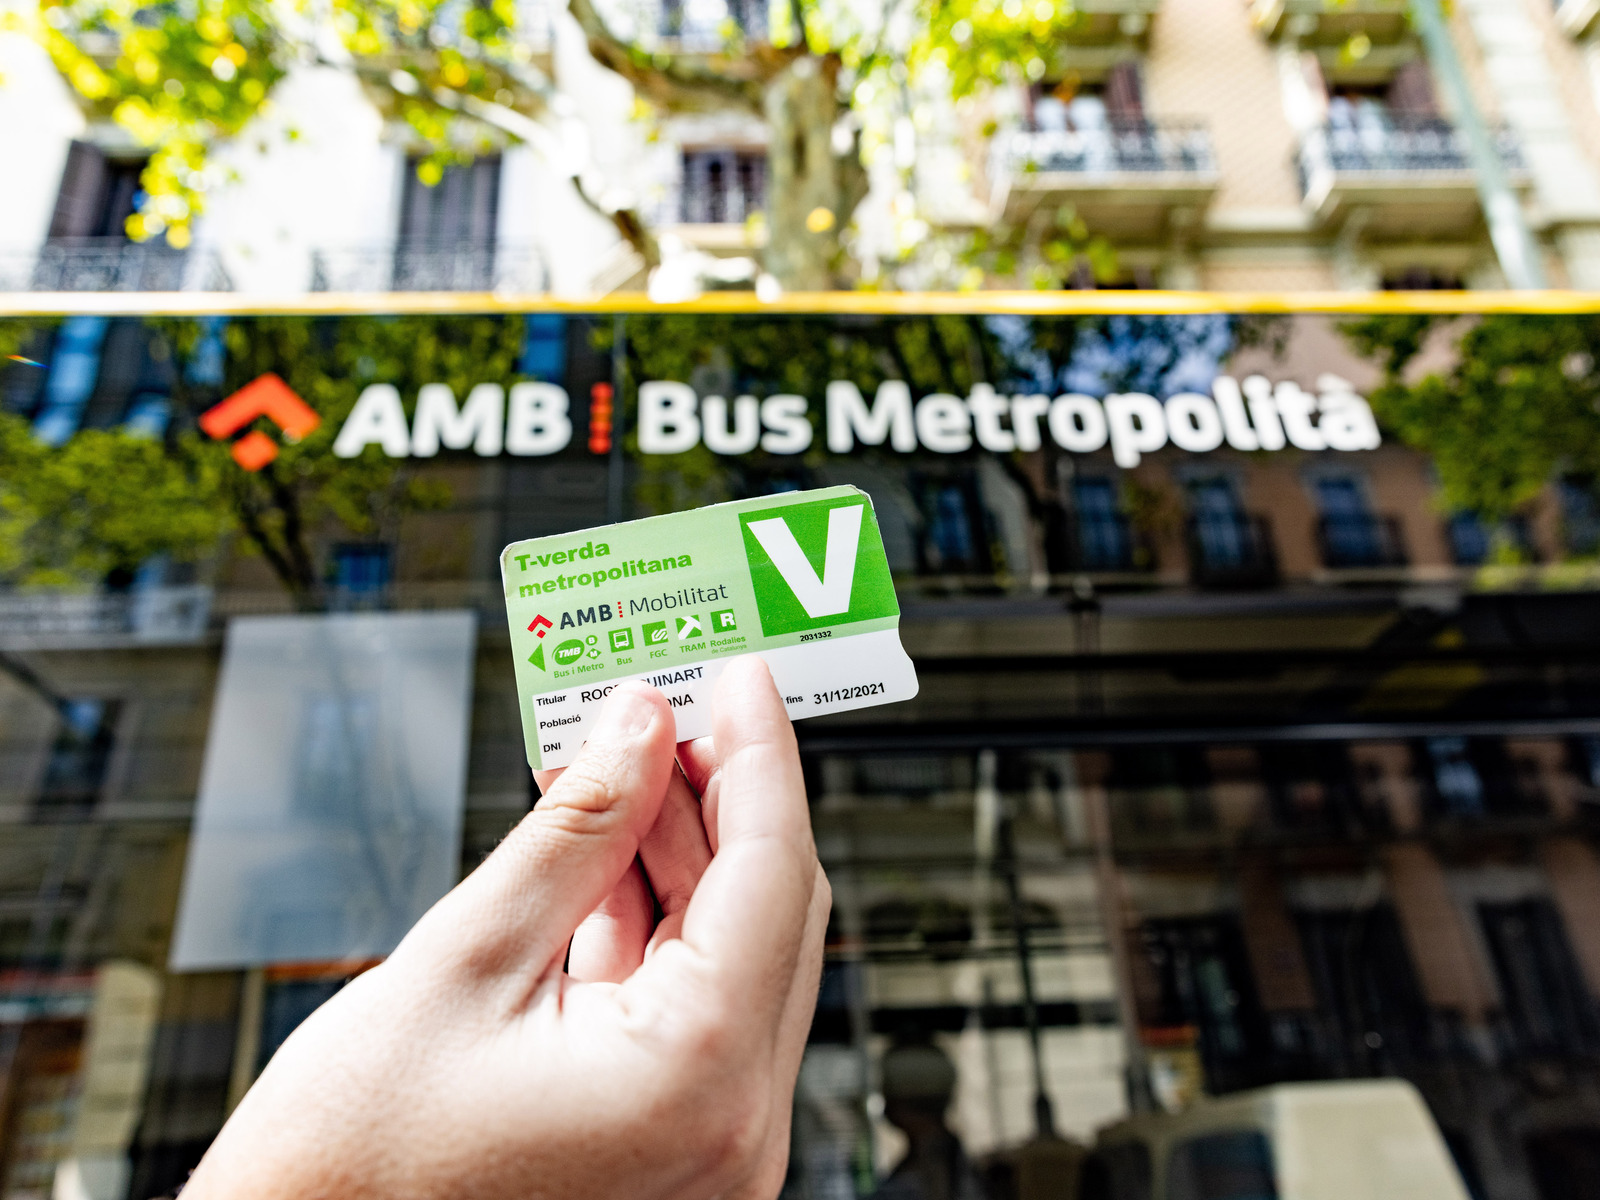 Barcelona issued 12,000 free annual public transport tickets to former car owners